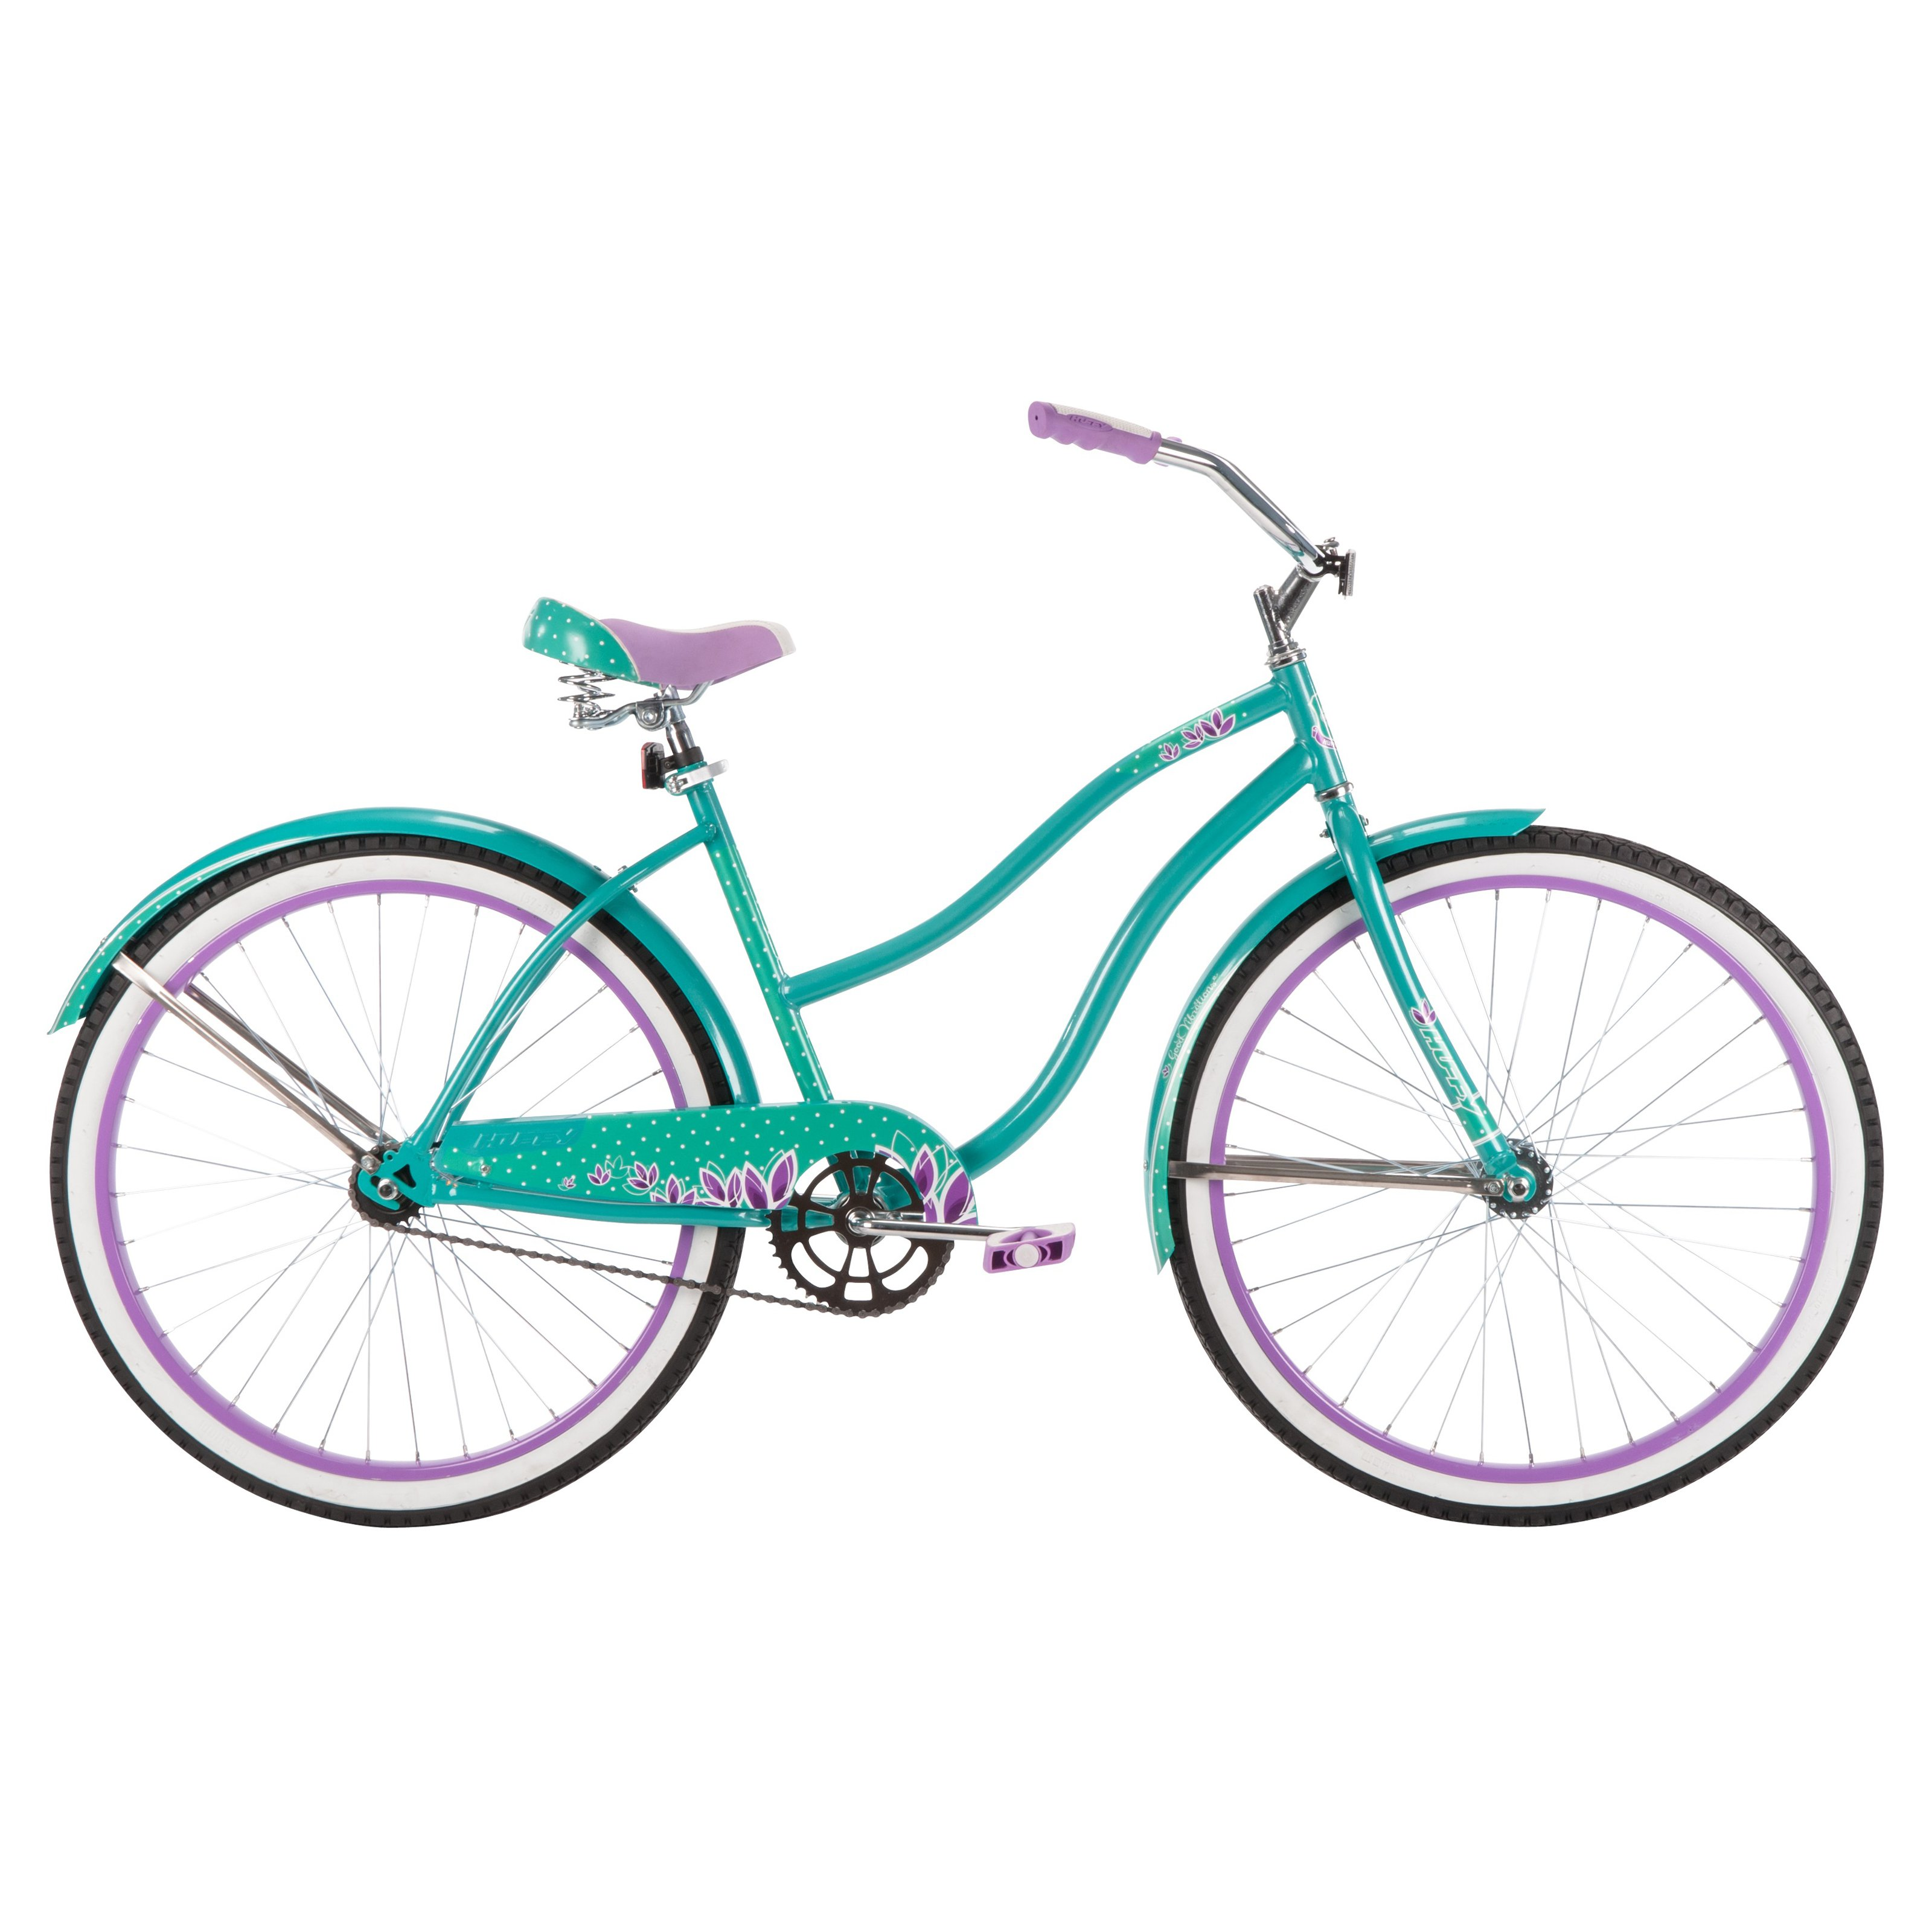 Huffy Good Vibrations 26 in. Classic Cruiser Turquoise by Huffy Bicycles